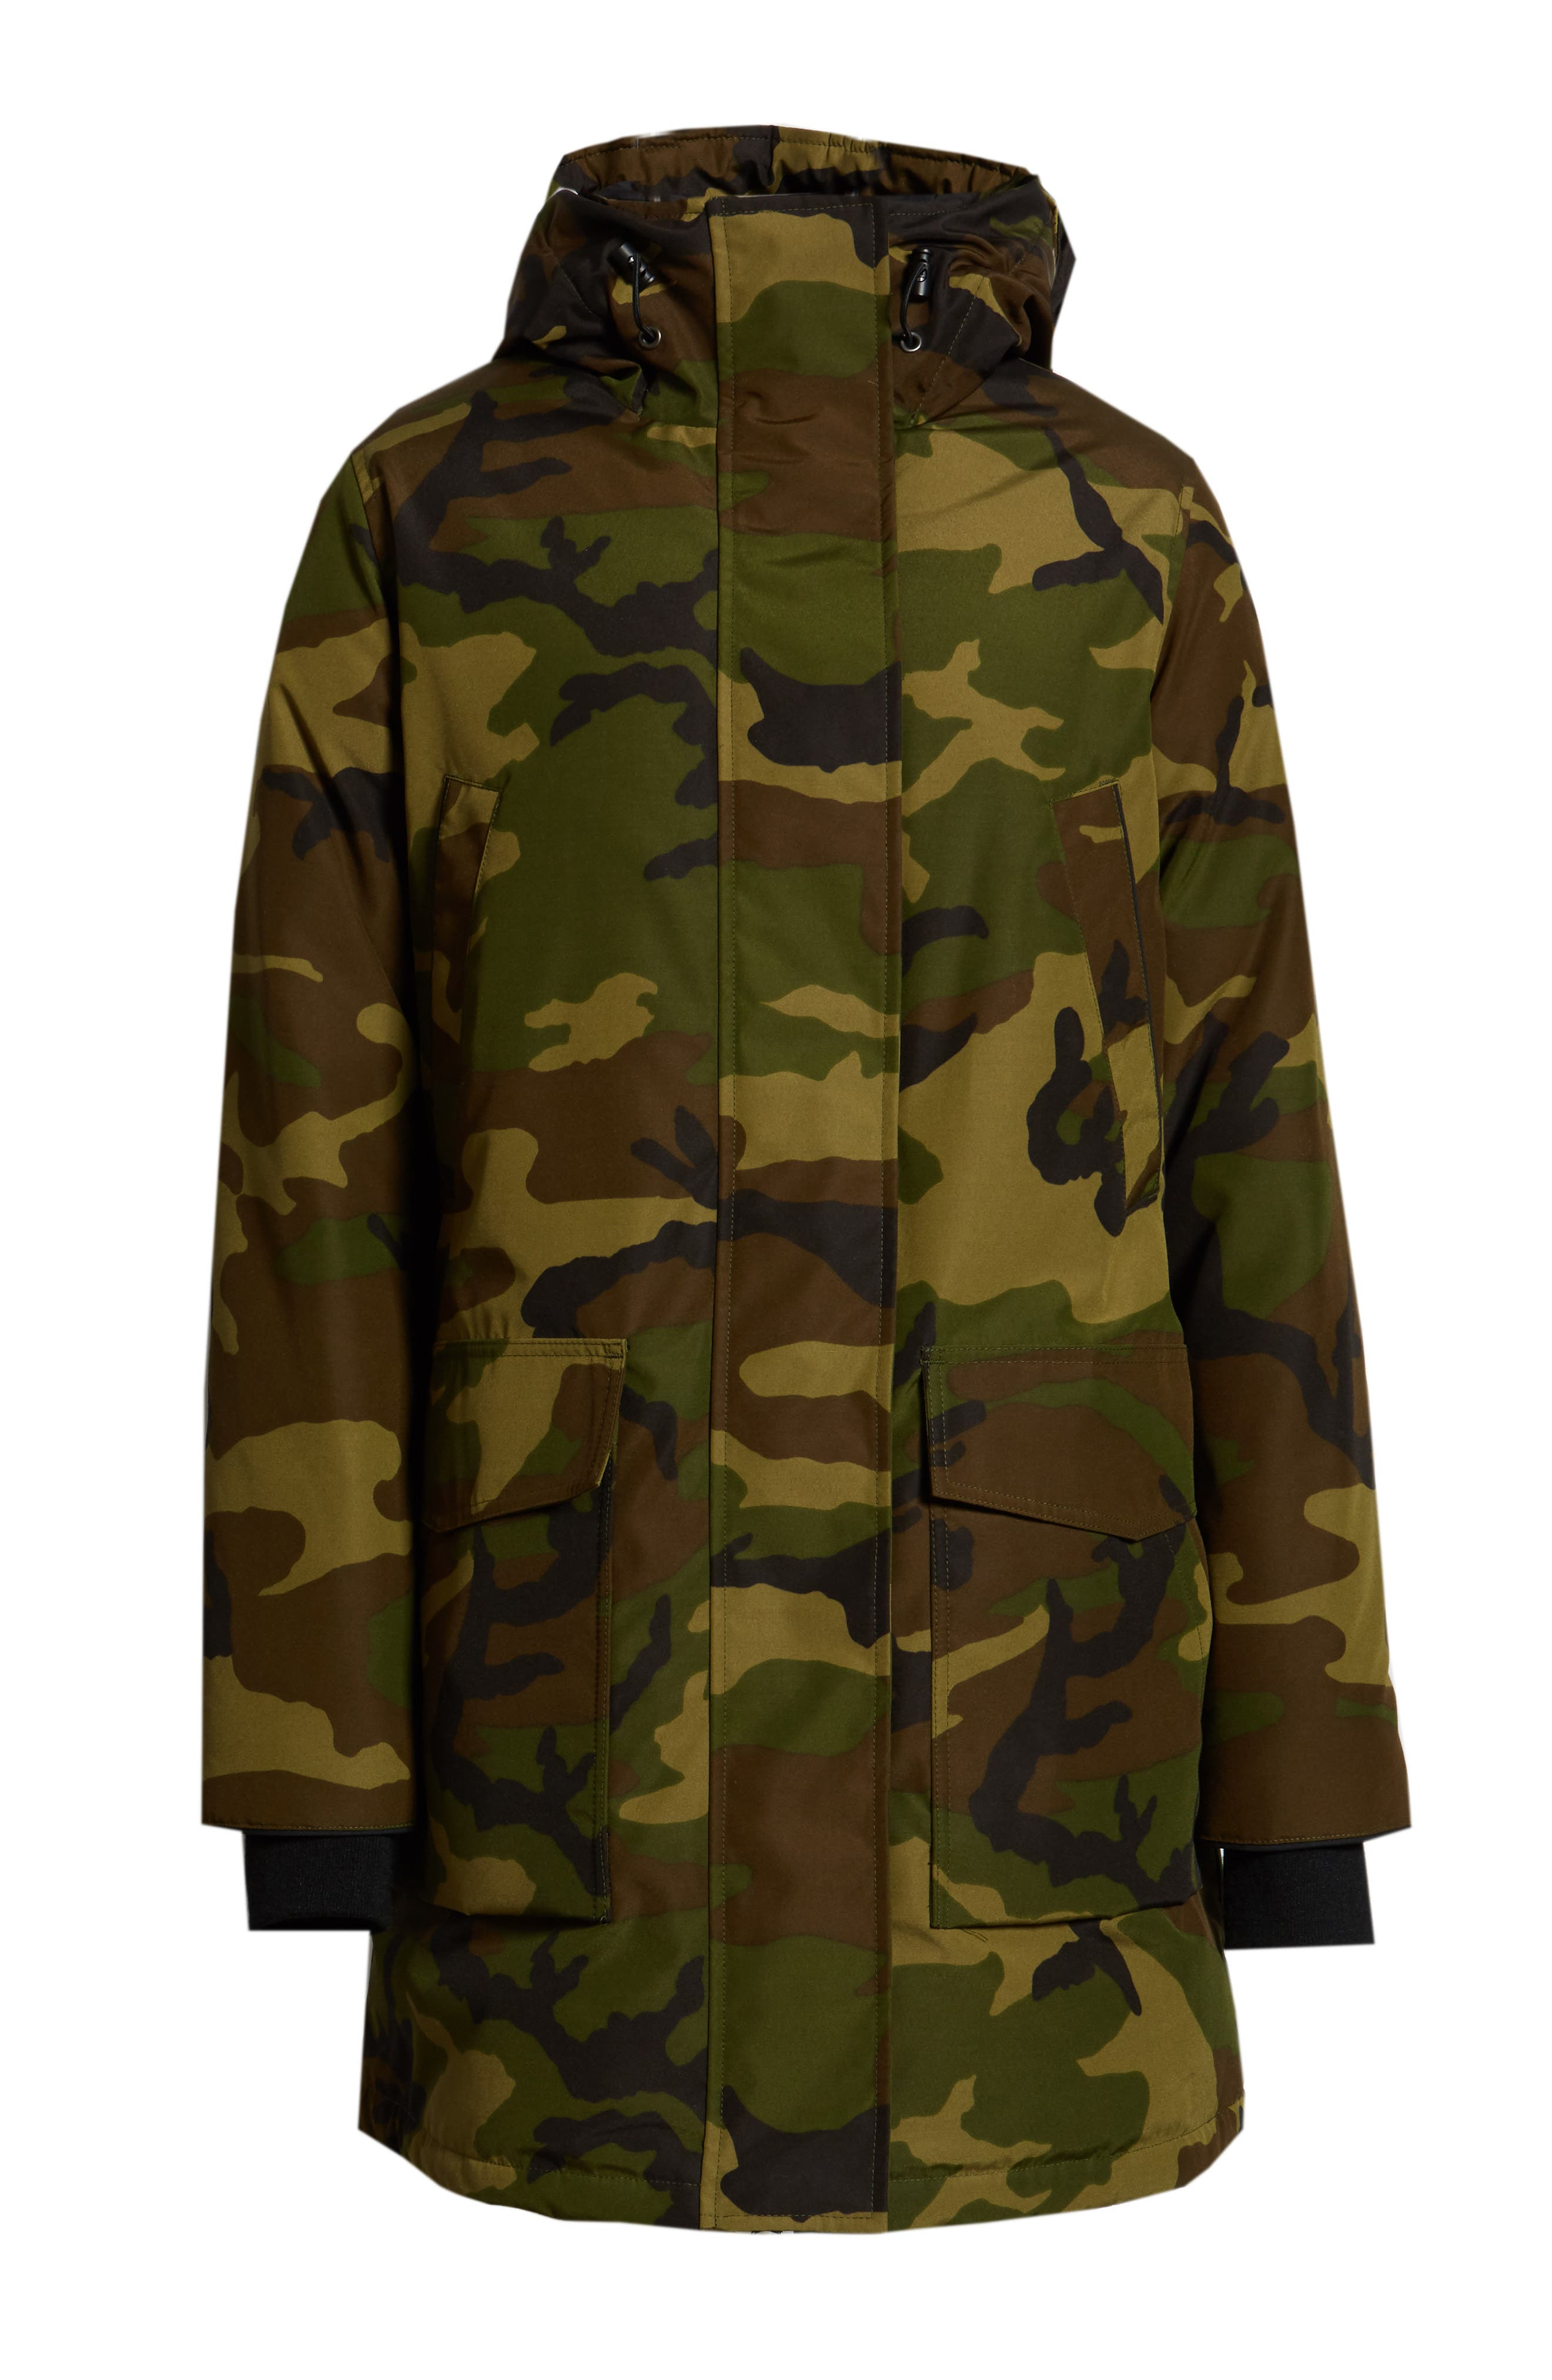 Canmore 625 Fill Power Down Parka,                             Alternate thumbnail 6, color,                             CLASSIC CAMO